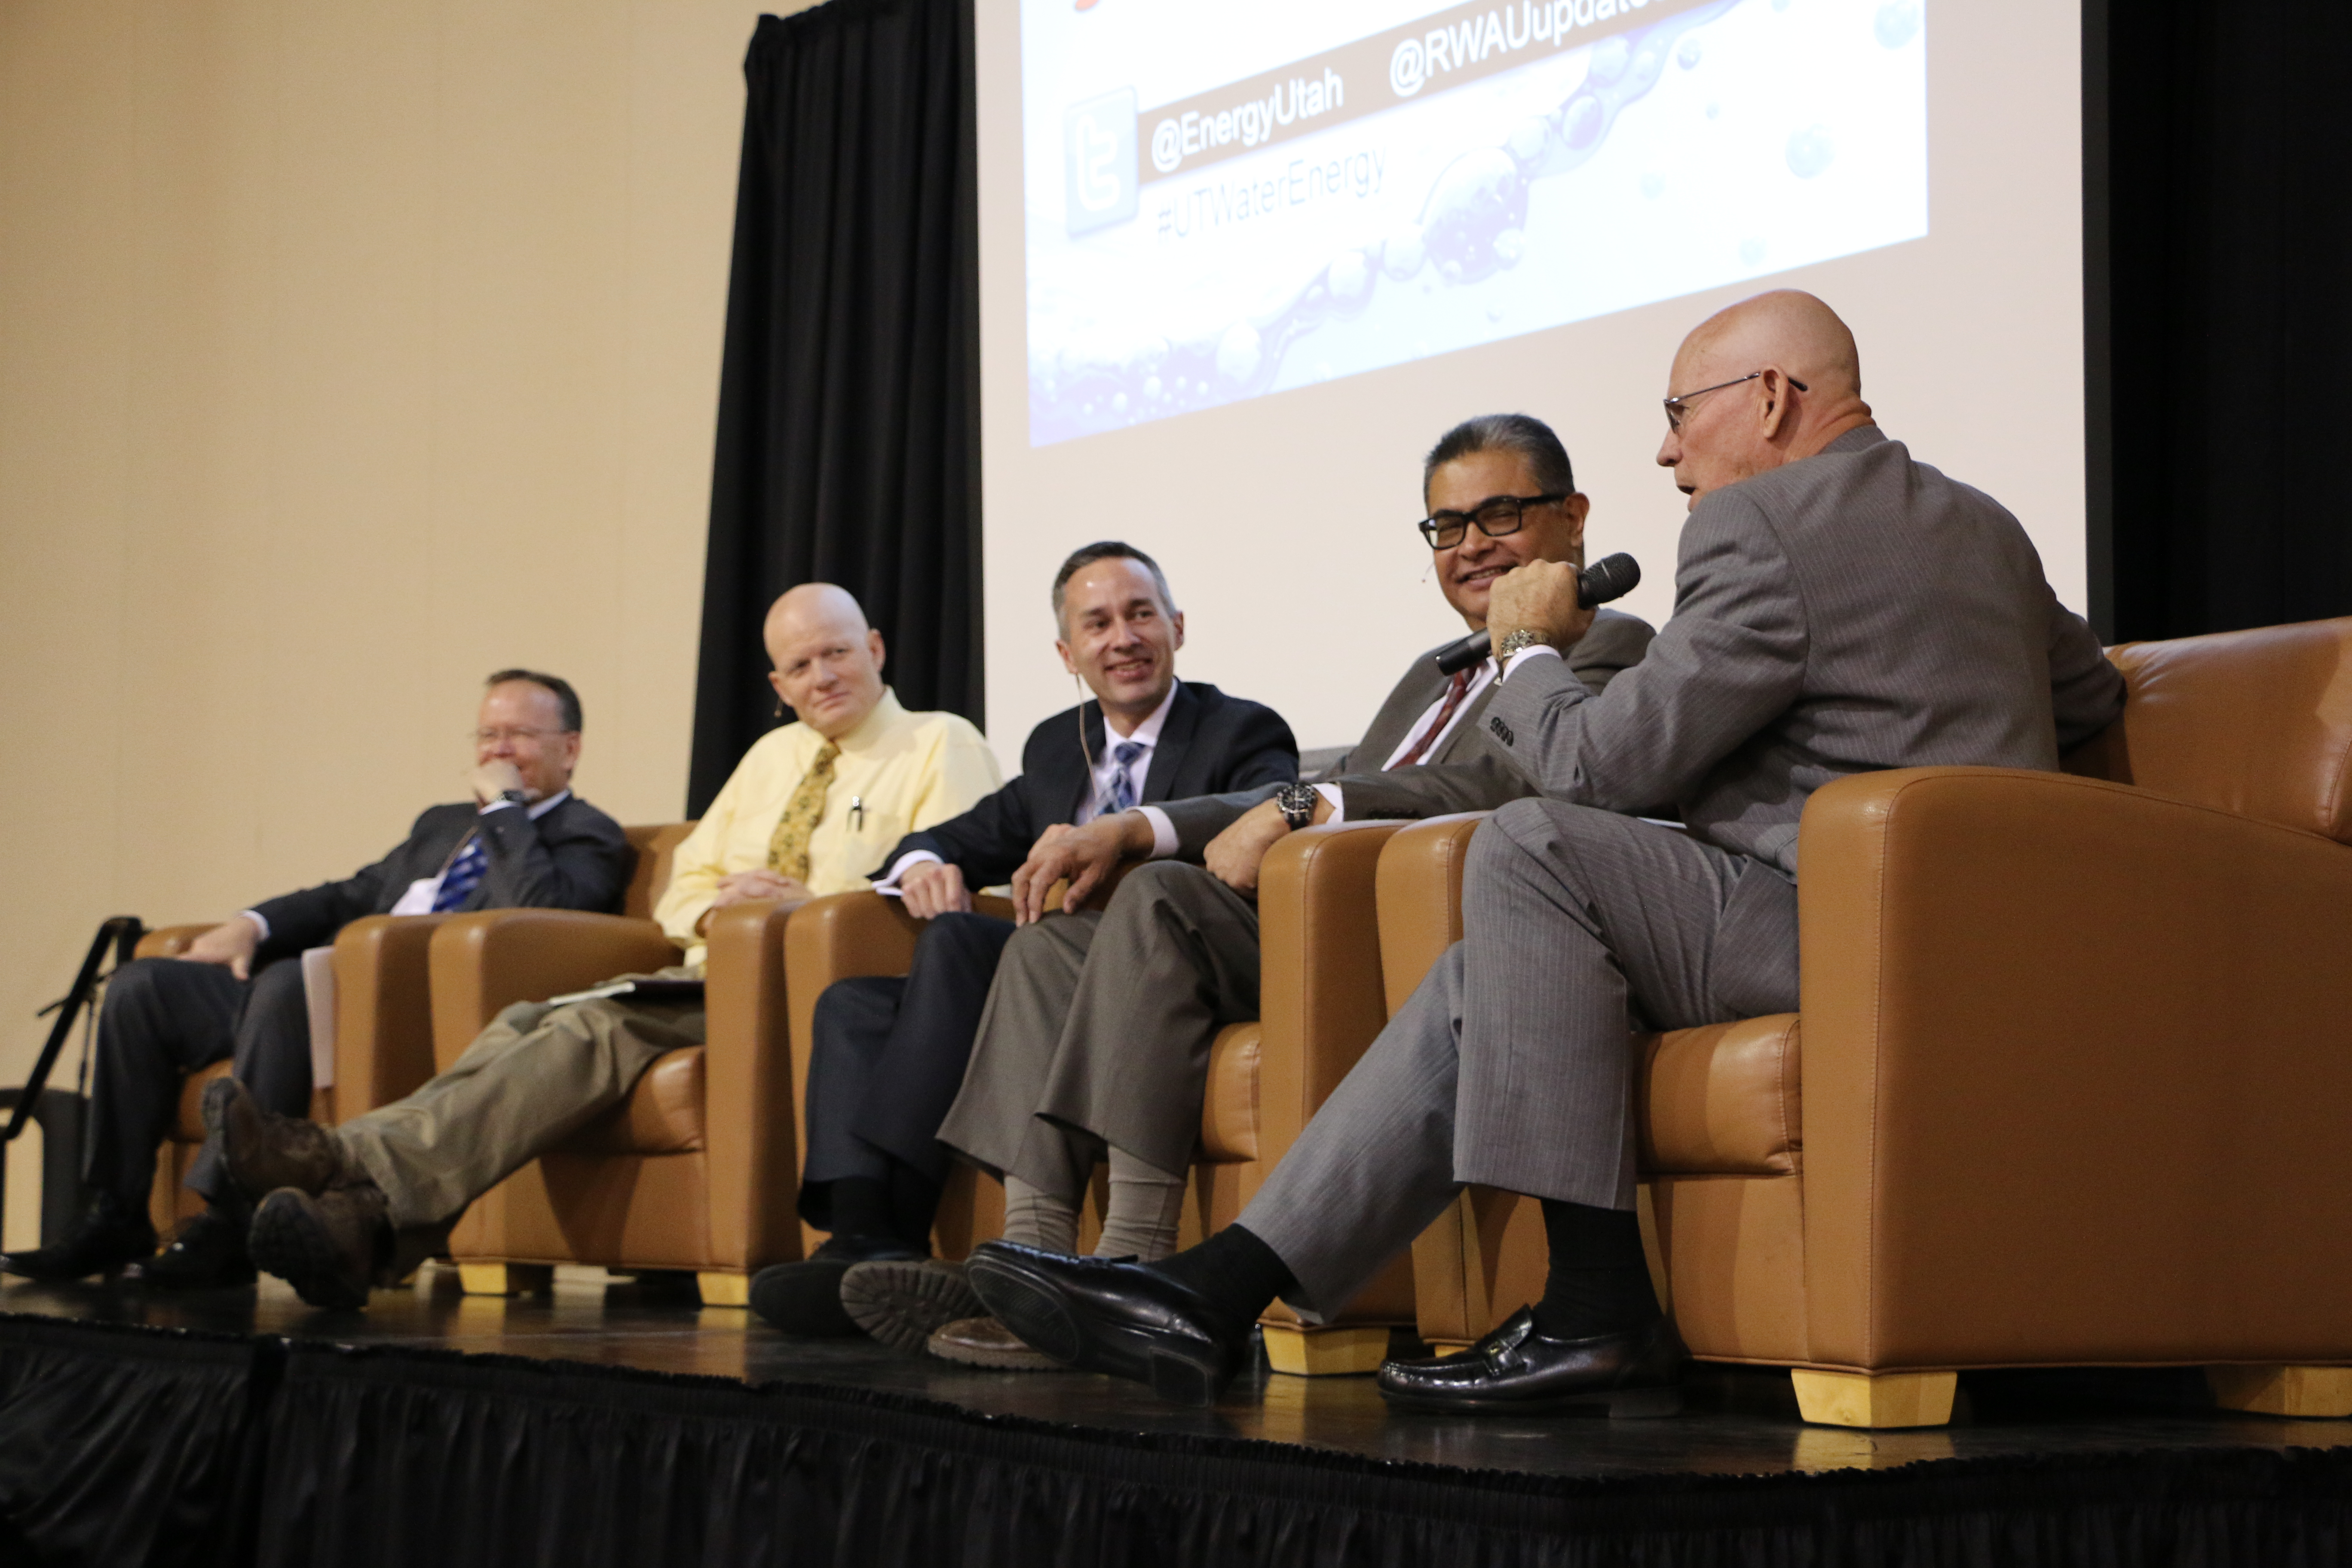 A panel discusses water and energy issues. (Meghan Stettler, Governor's Office of Energy Development)